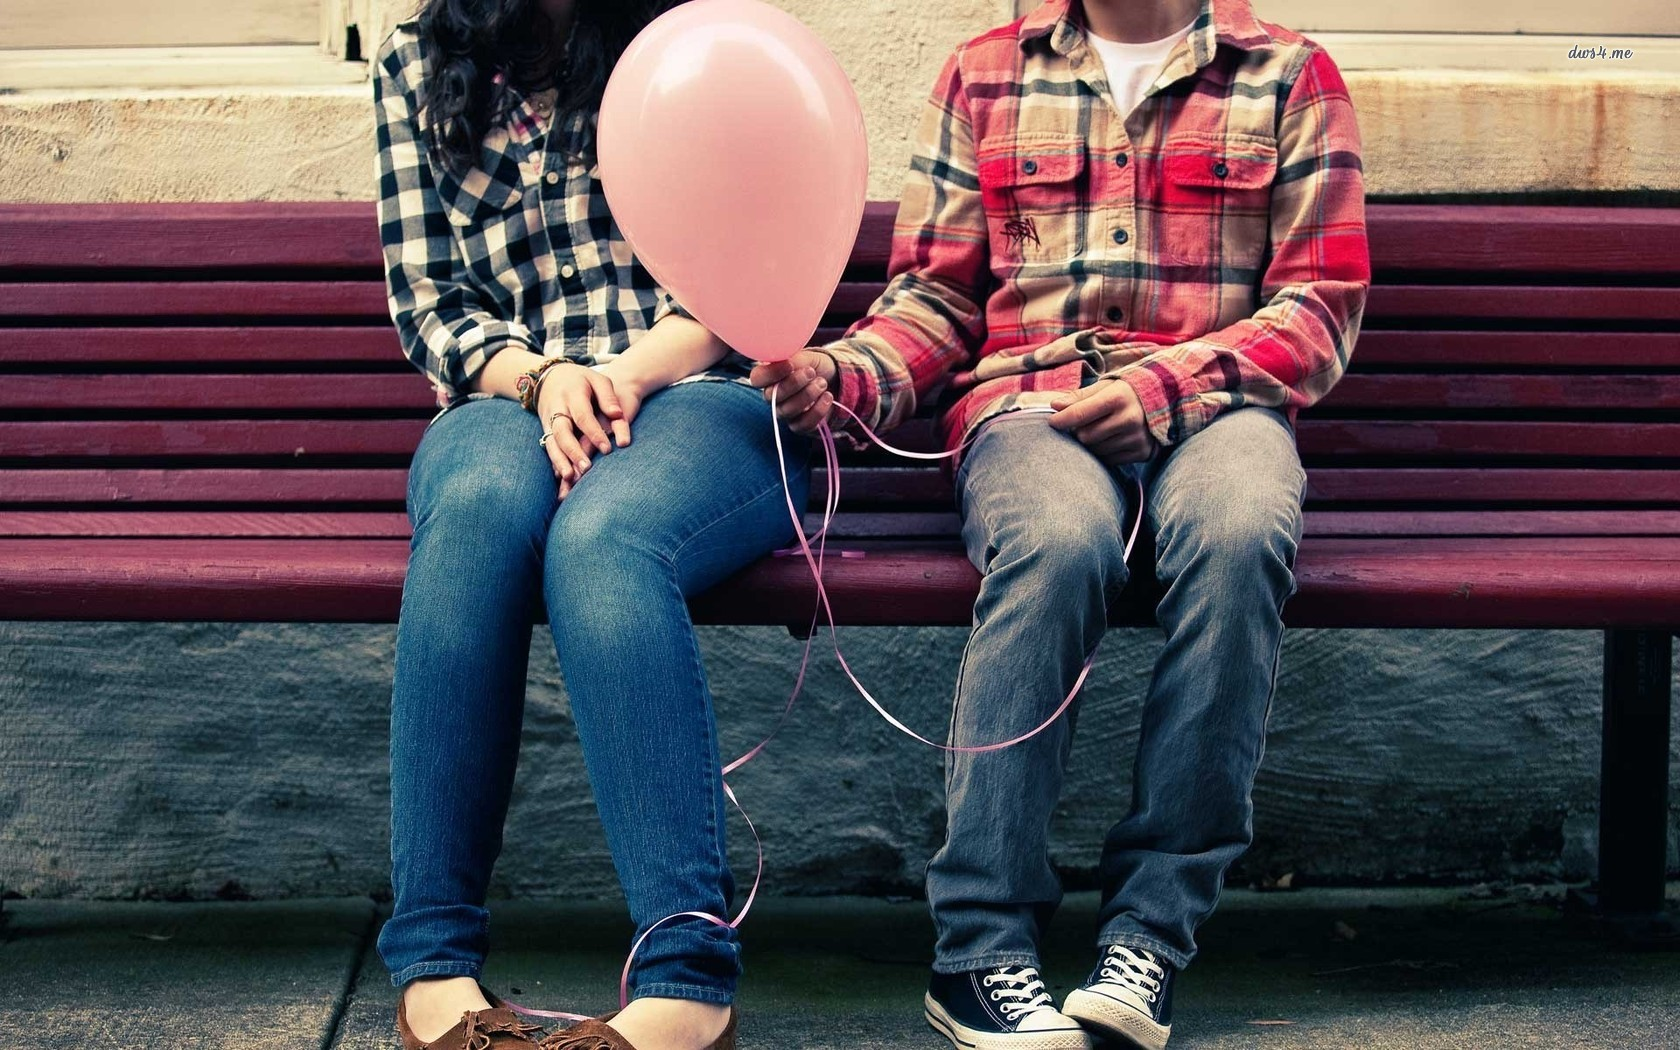 13388-young-couple-with-a-balloon-1680x1050-photography-wallpaper